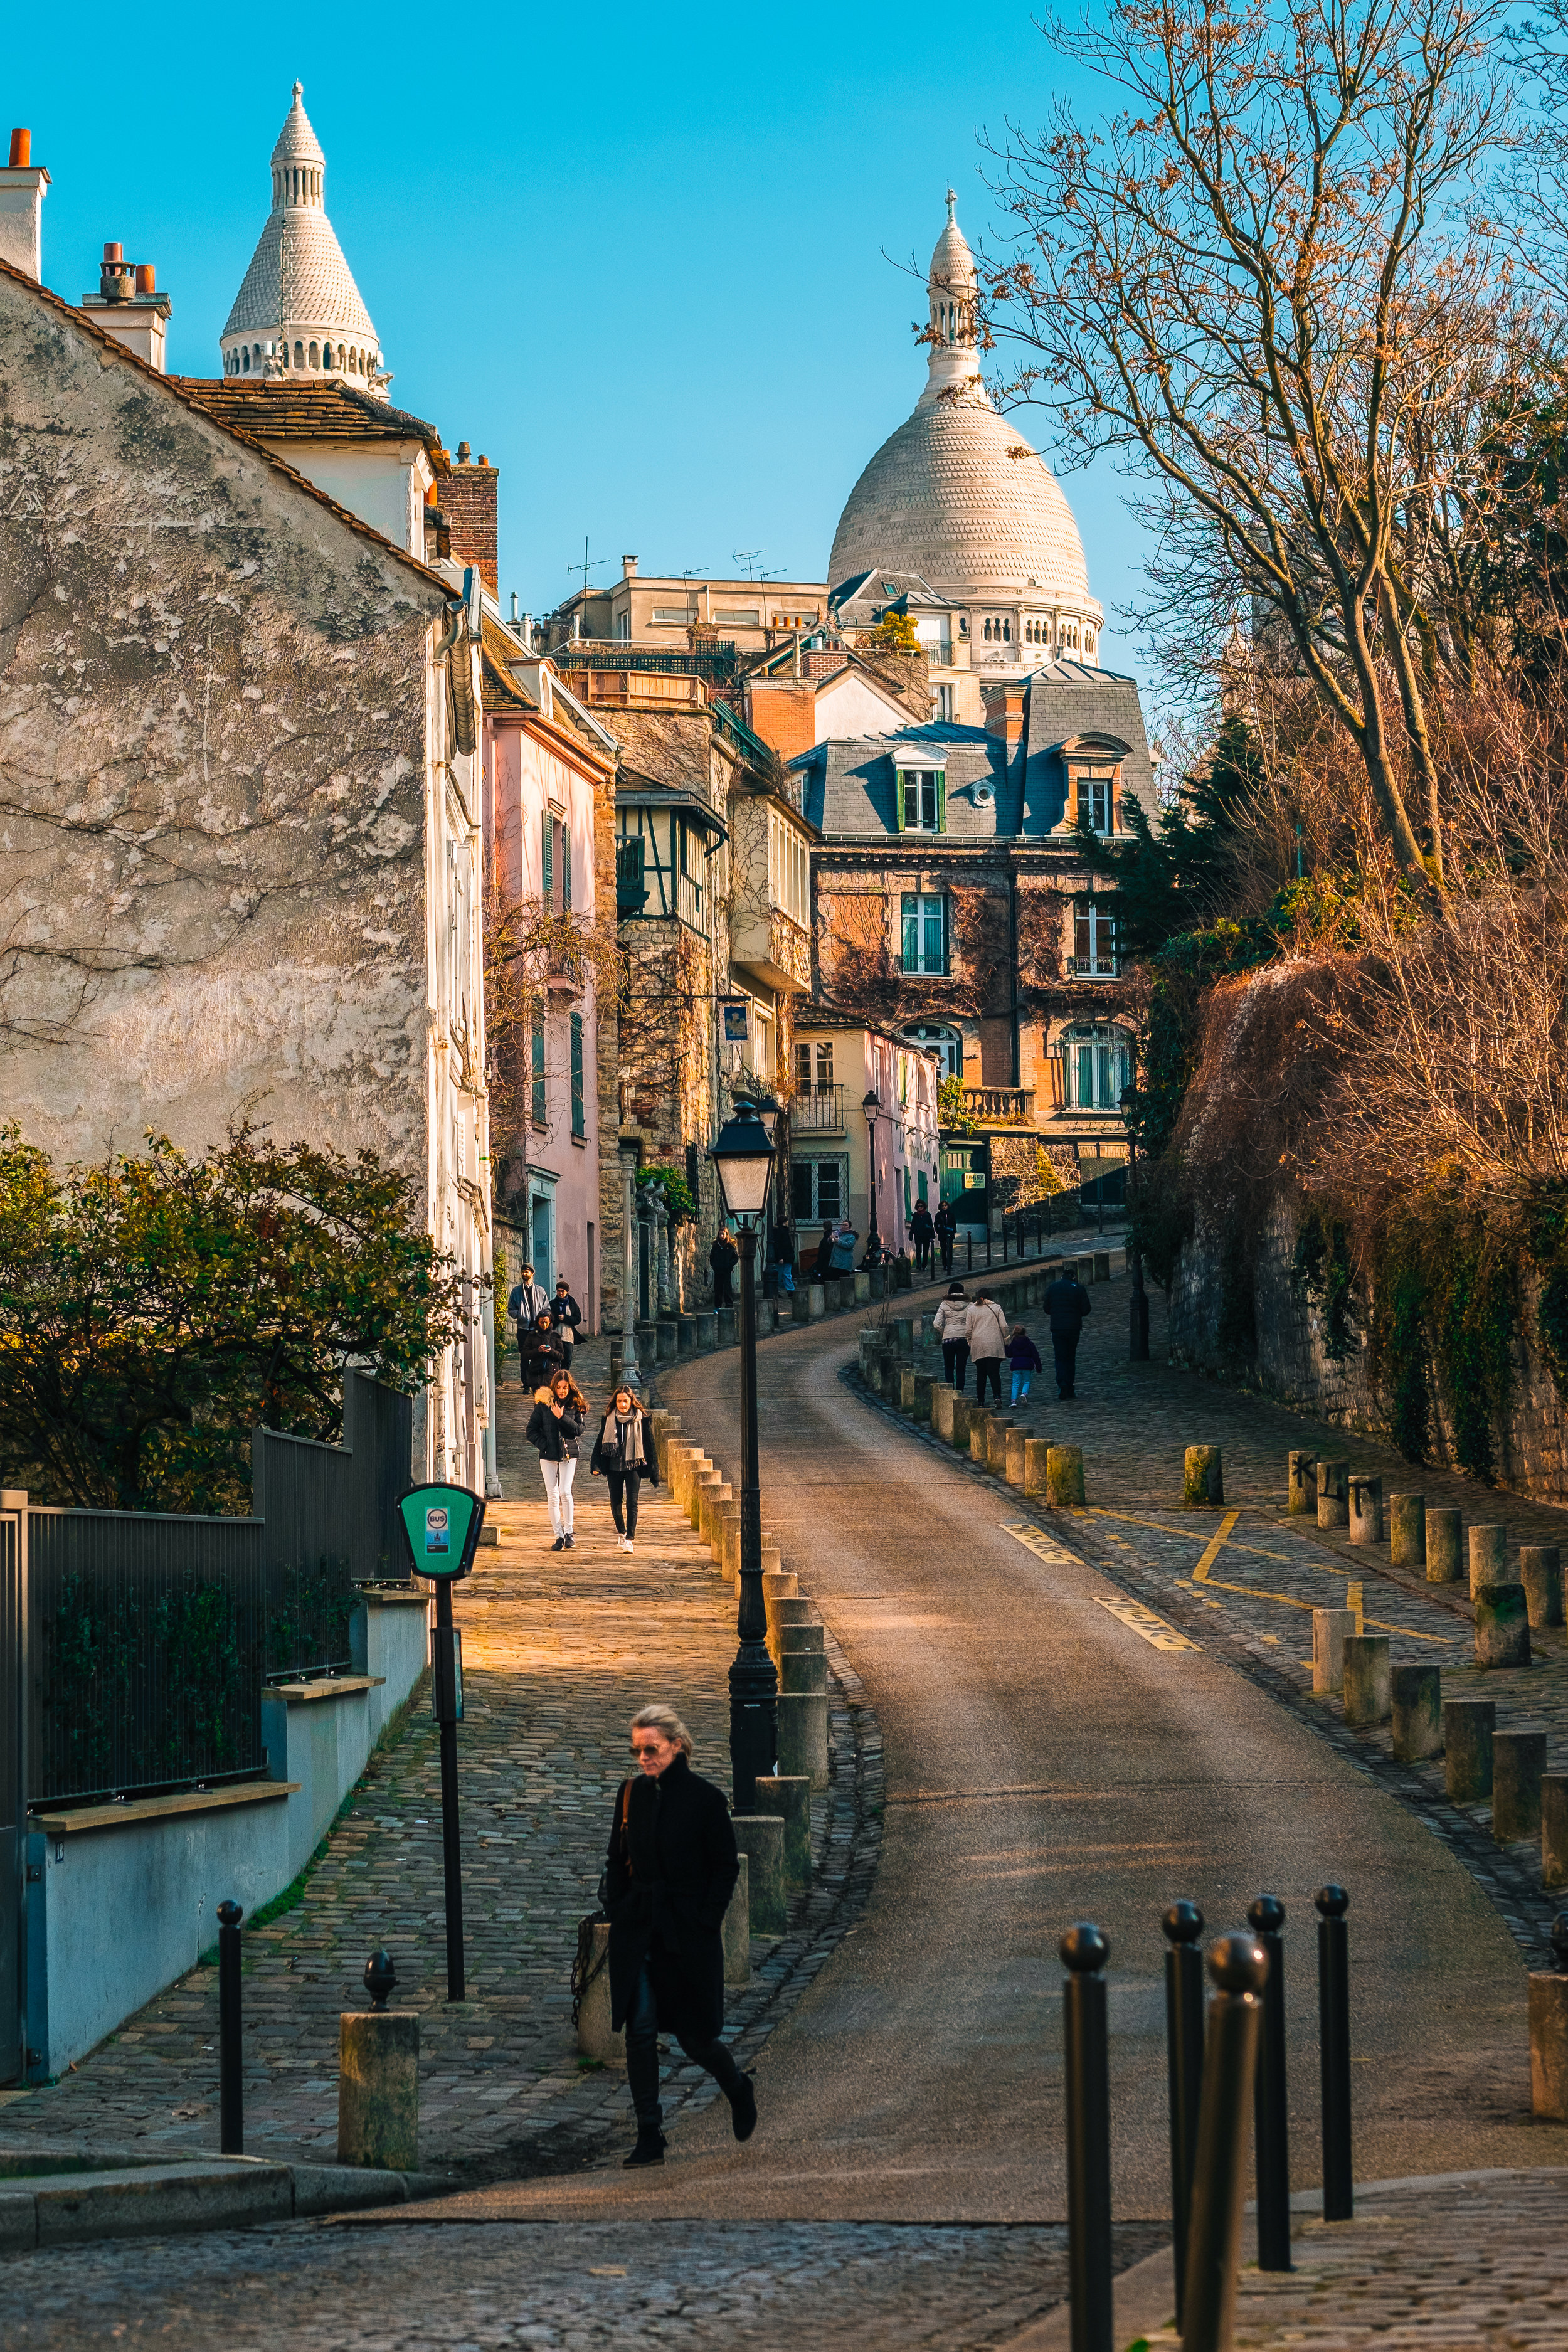 Montmartre streets . Paris, France. February 13, 2017.